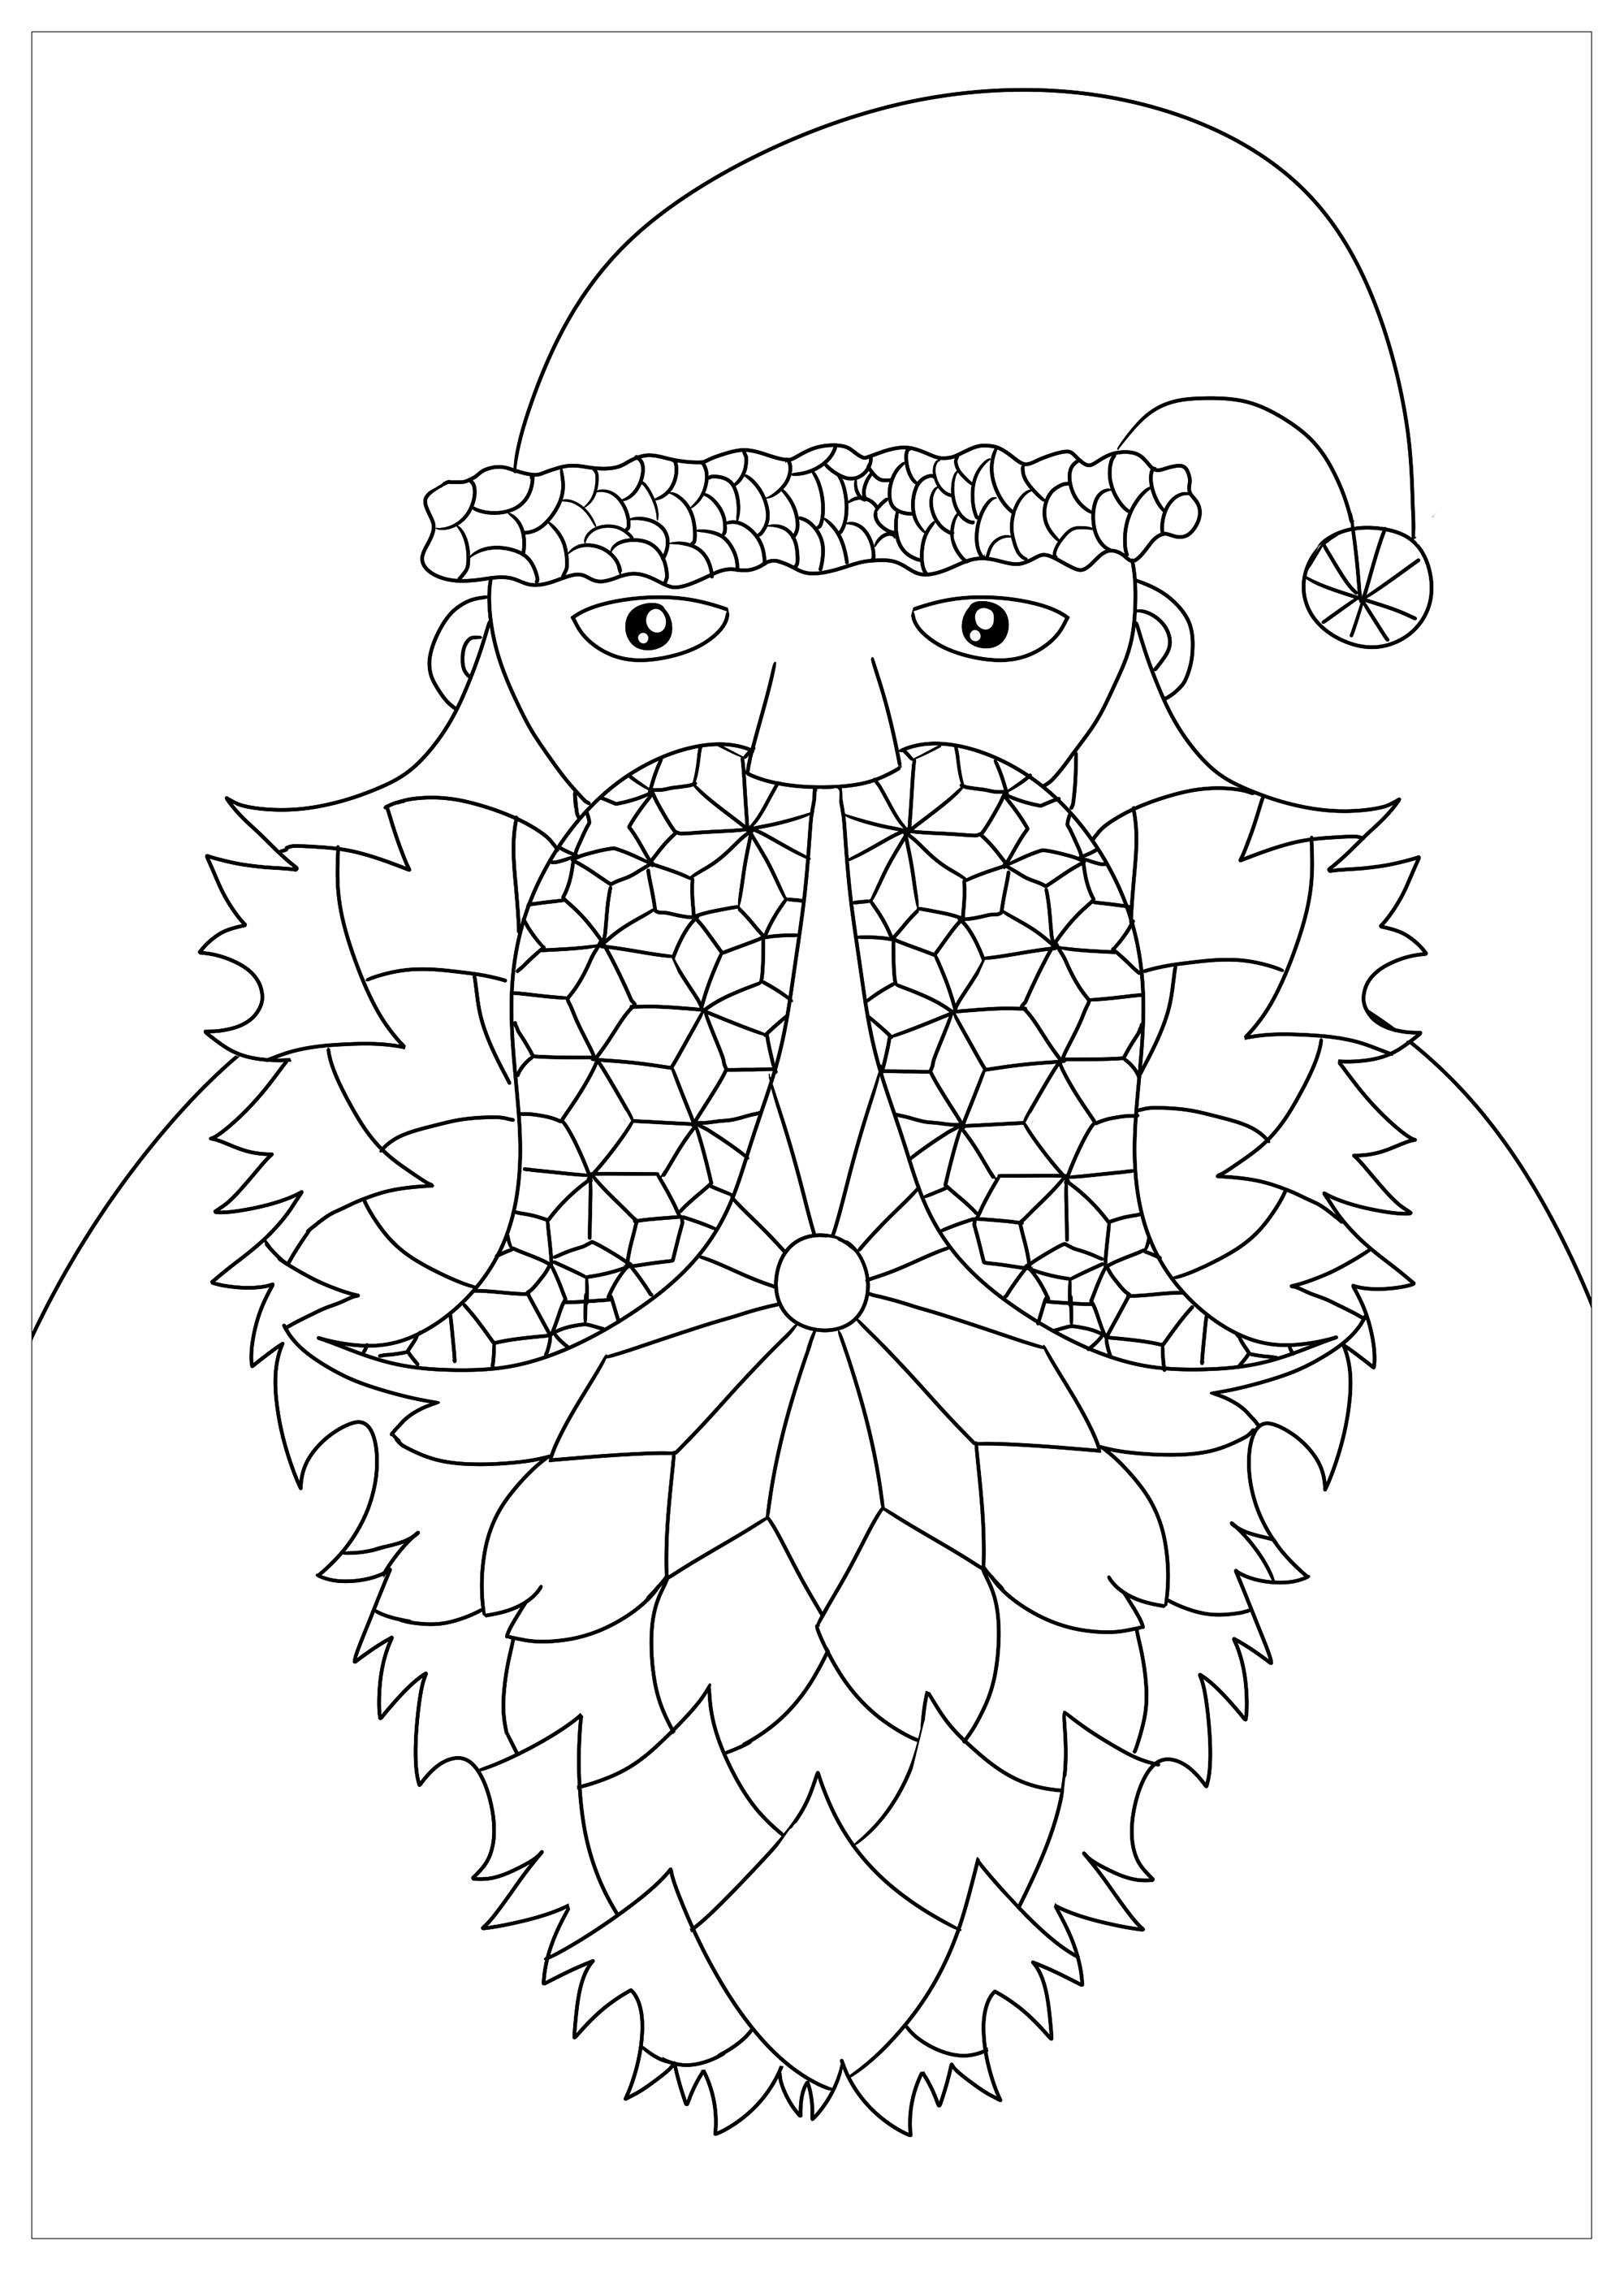 Santa Claus in a simple drawing - Christmas Coloring pages ...